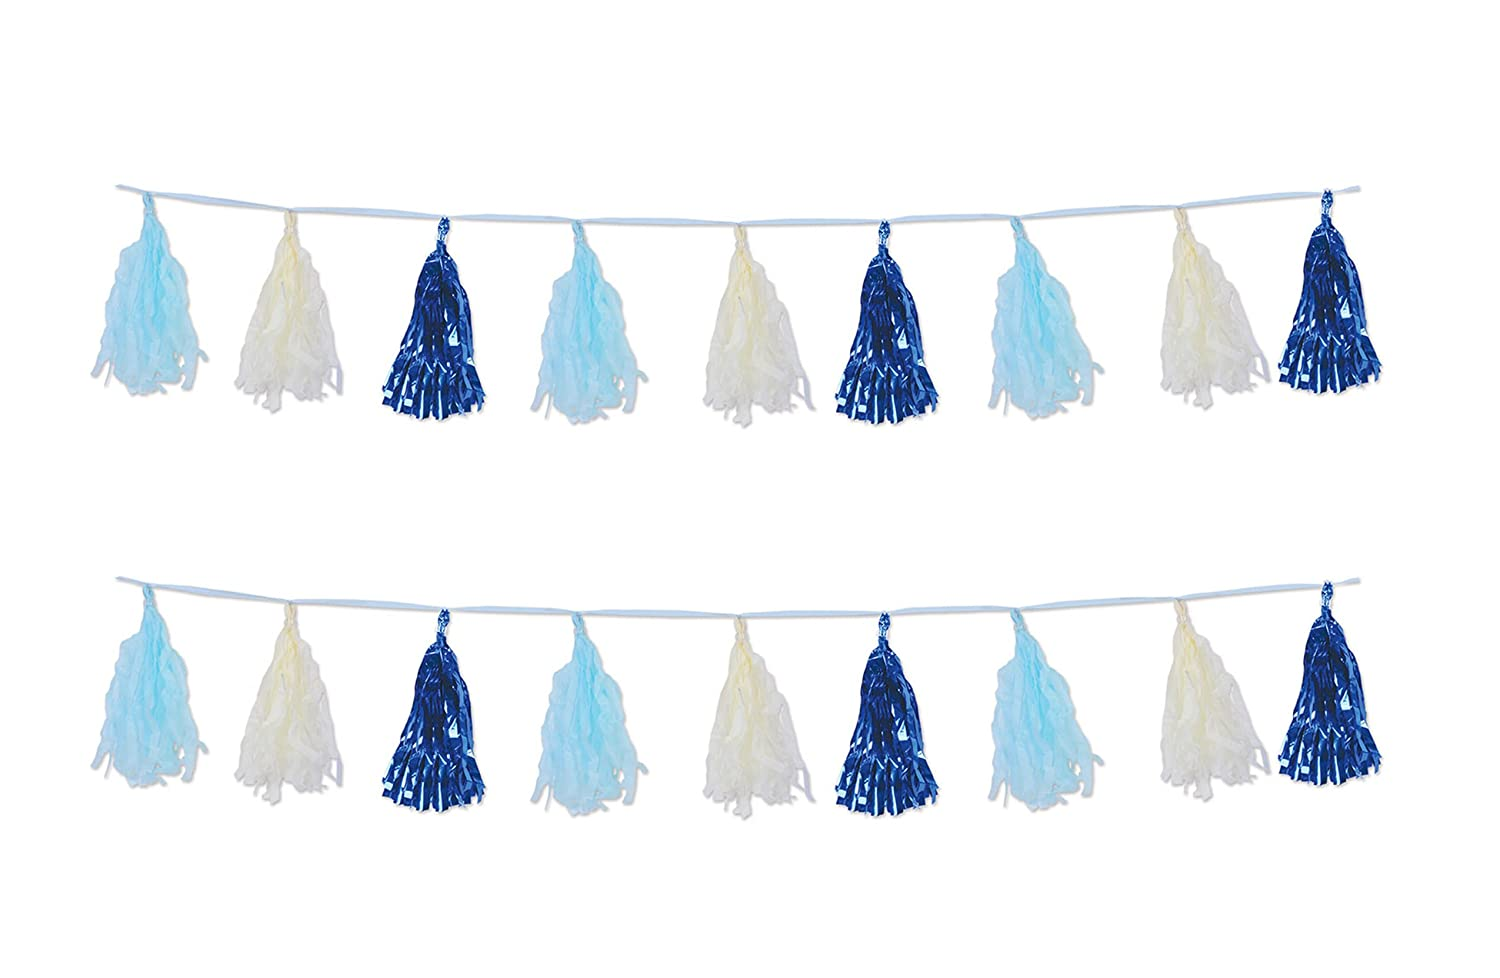 Beistle 59928-B Beistle 59928-B Blue//Light Blue//Ivory 9.75 x 8 9.75 x 8 2 Piece Metallic /& Tissue Tassel Garland